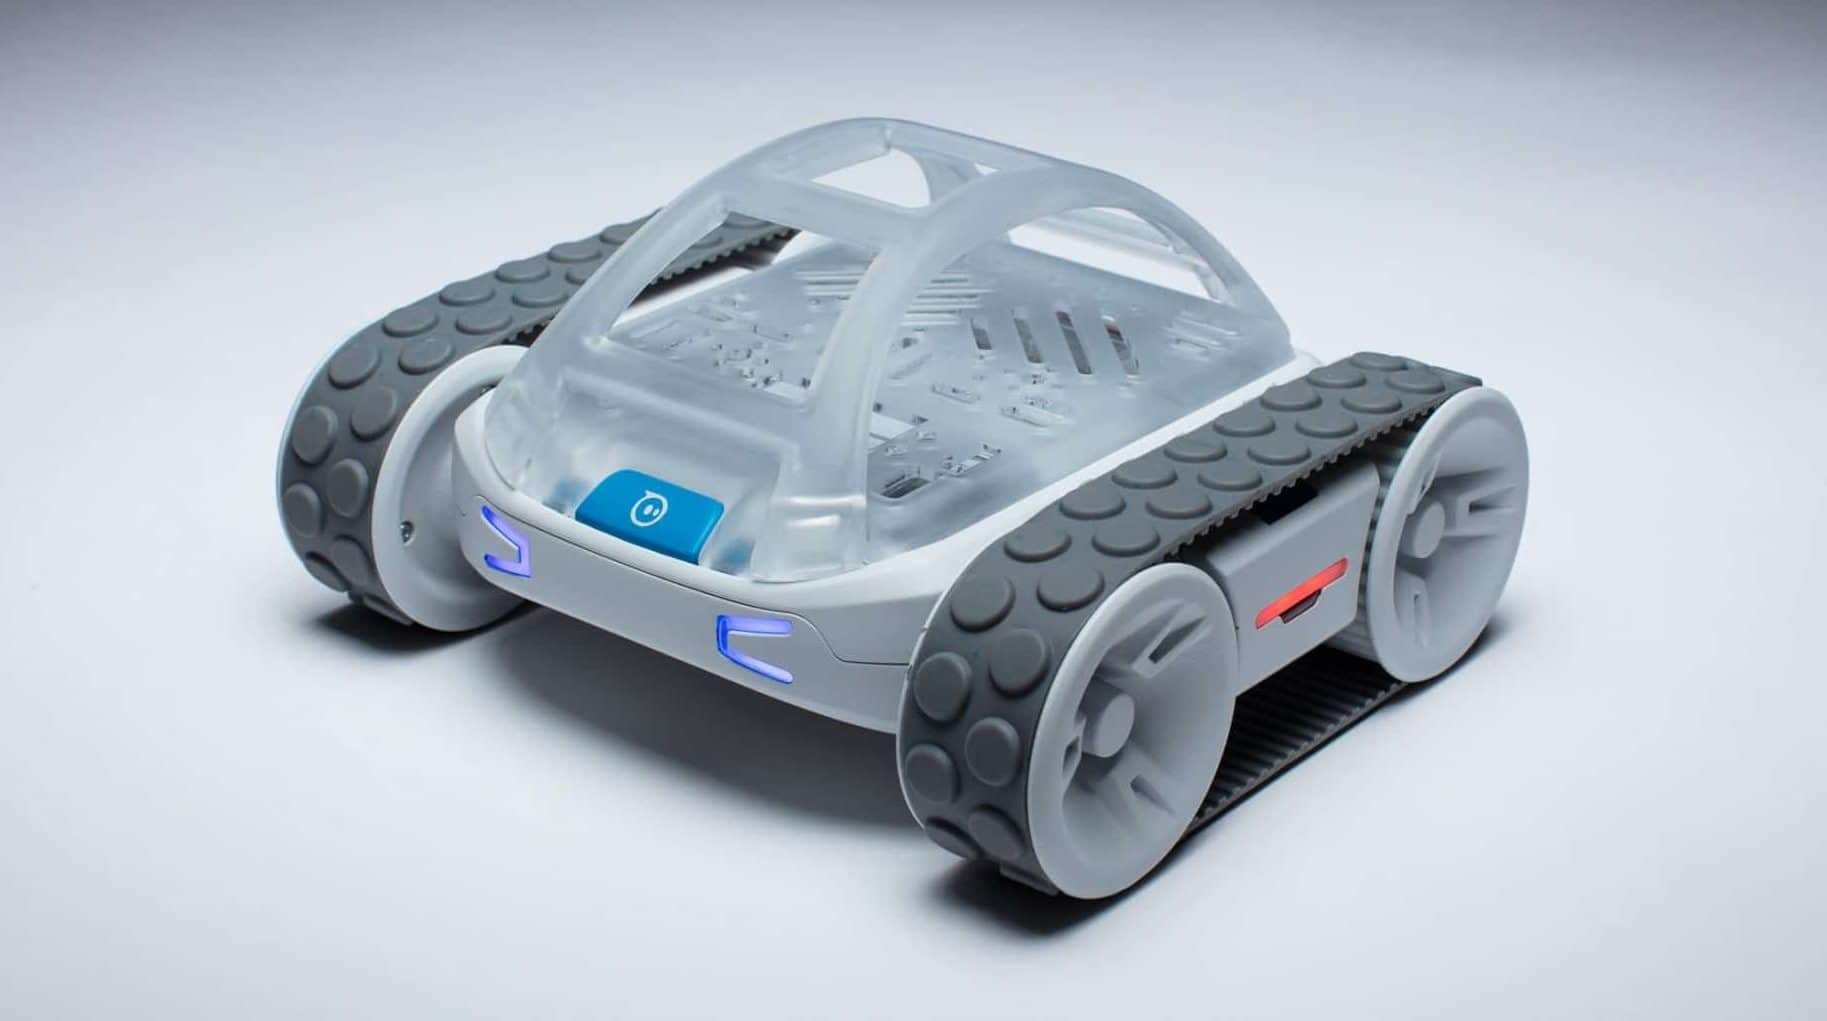 sphero rvr rover for stem